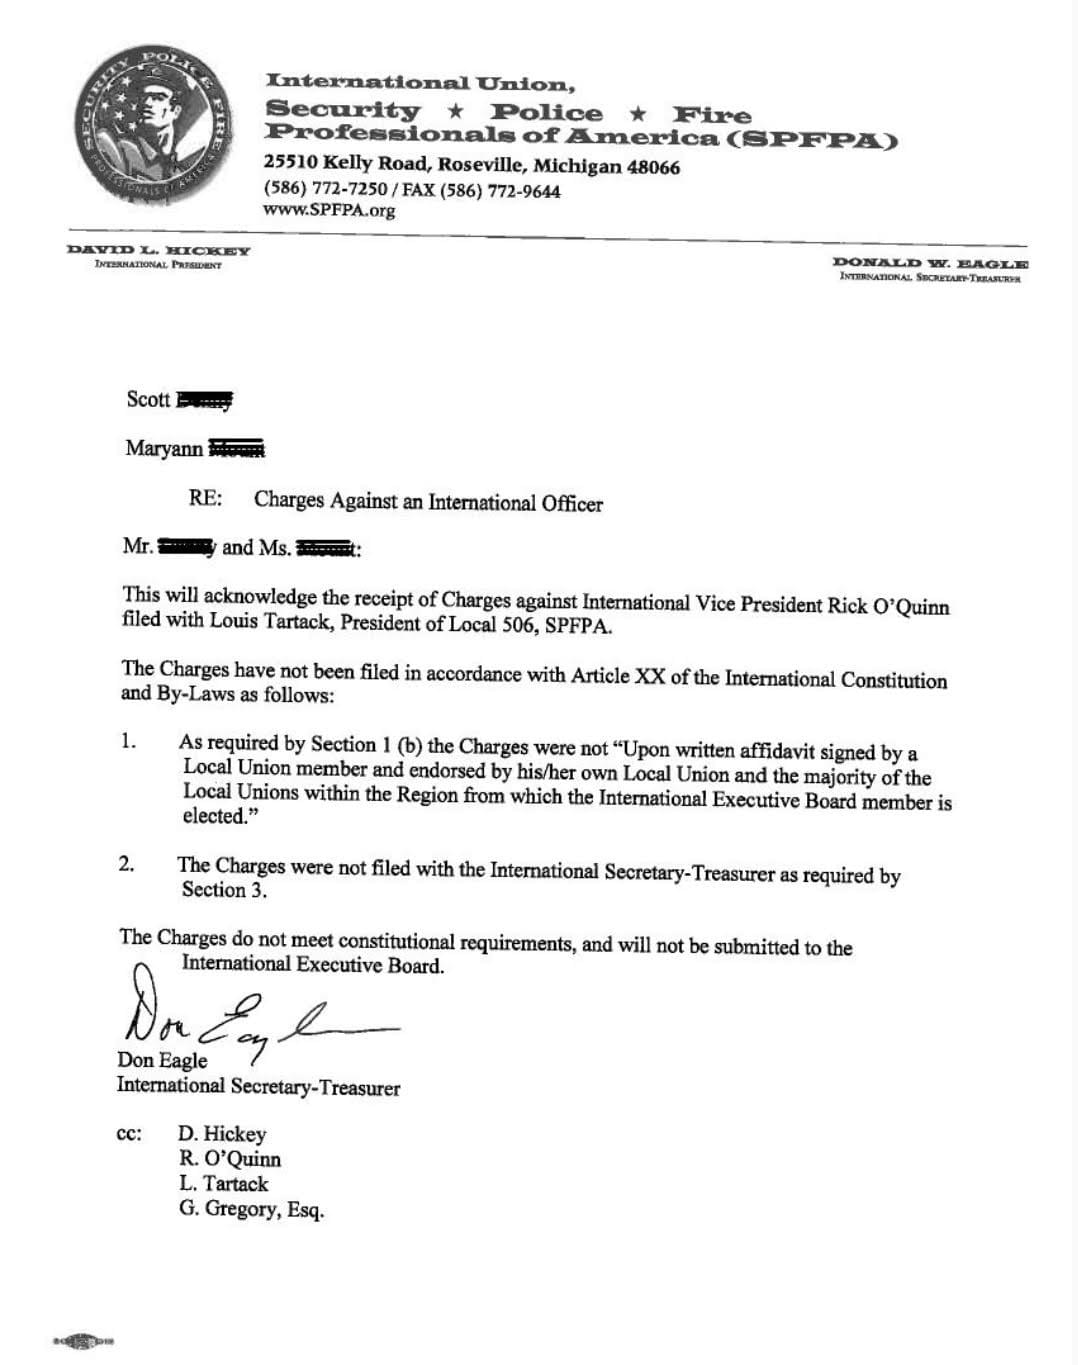 SPFPA Response to the Local 506 Charges Against SPFPA VP Rick O'Quinn